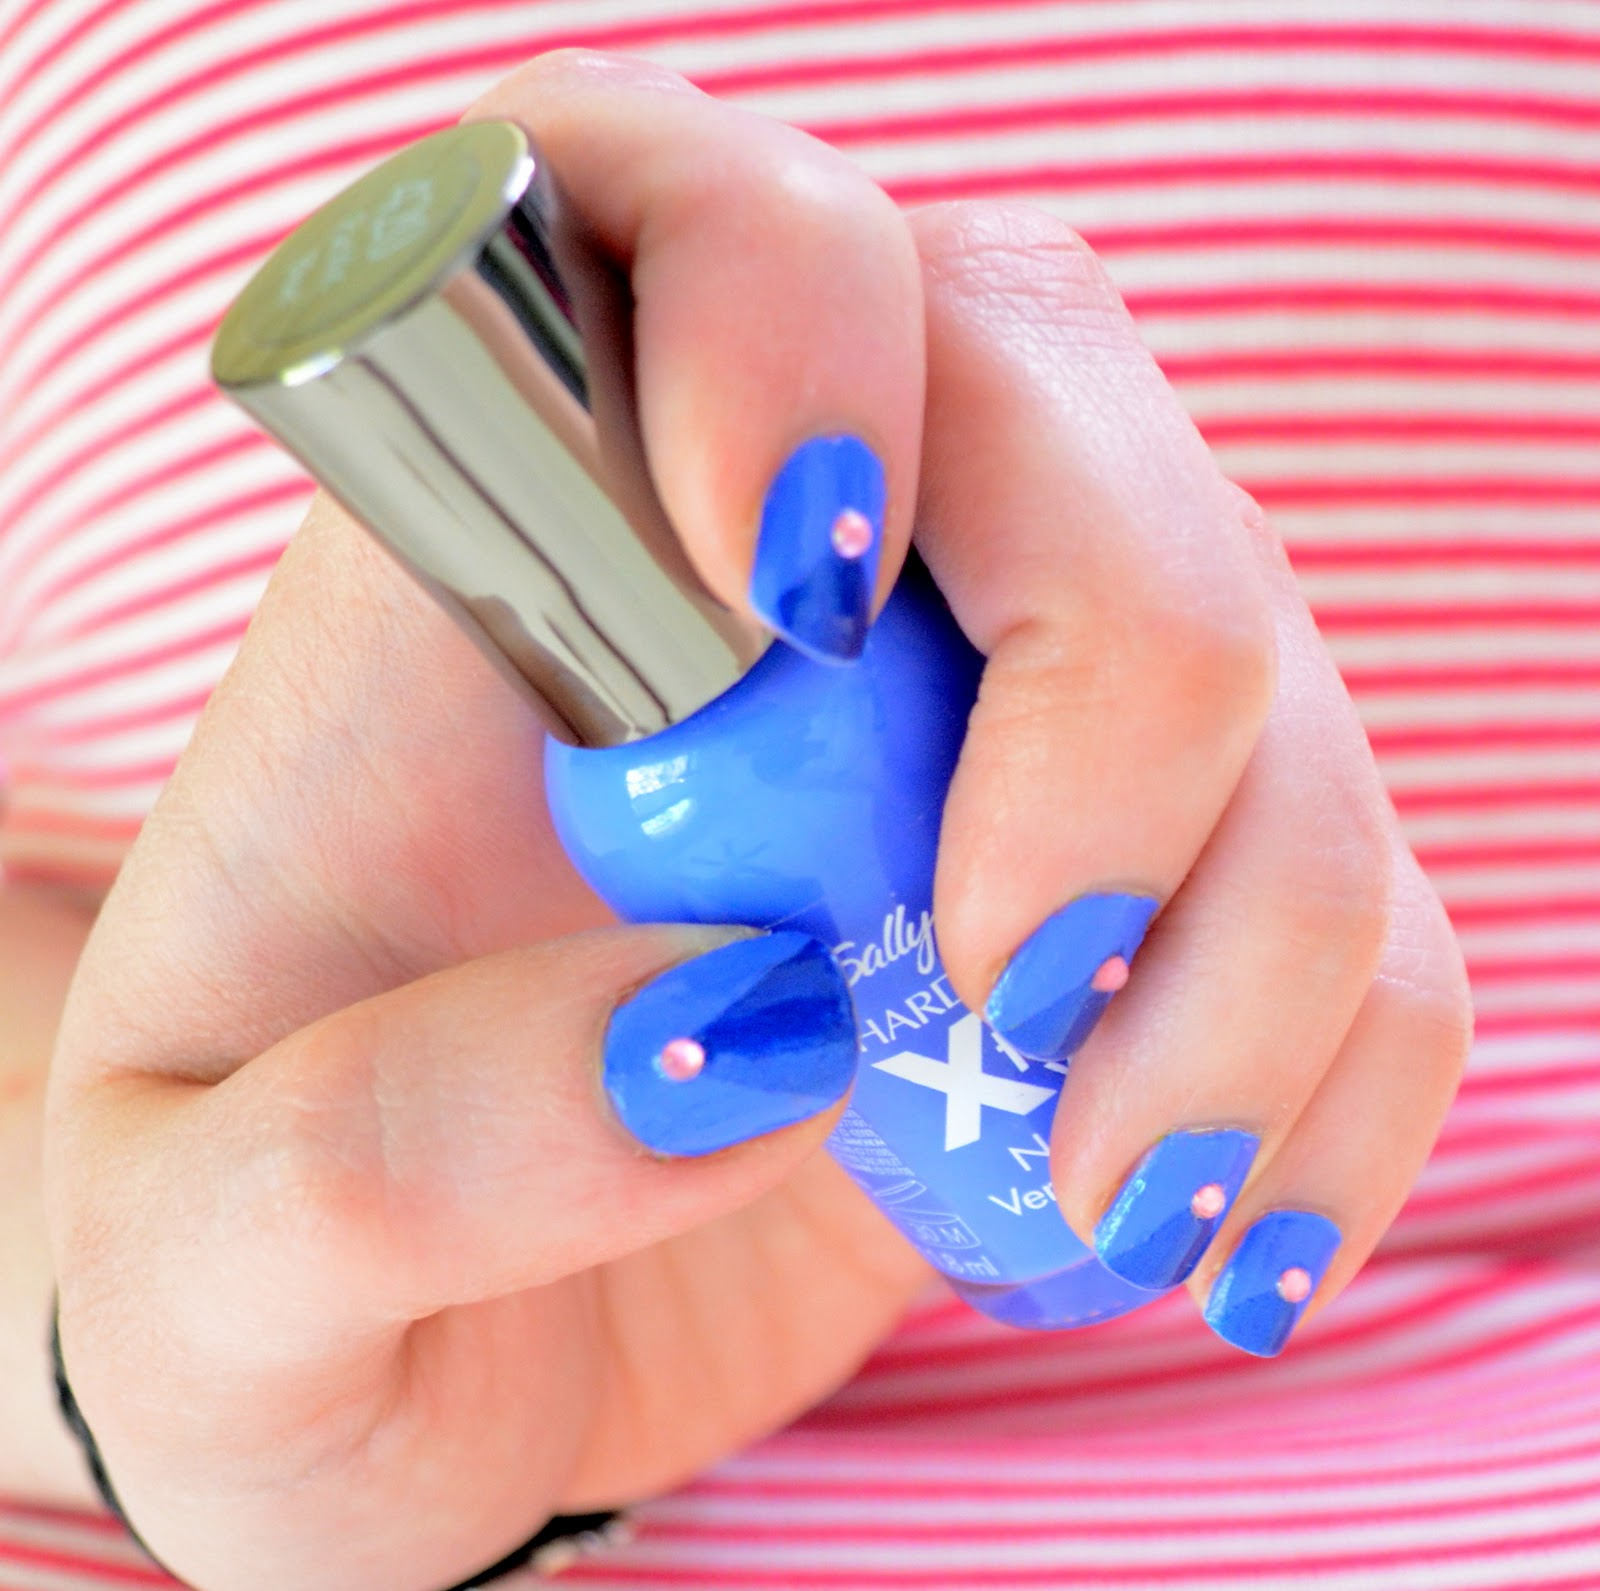 how to clean up nail polish off floor